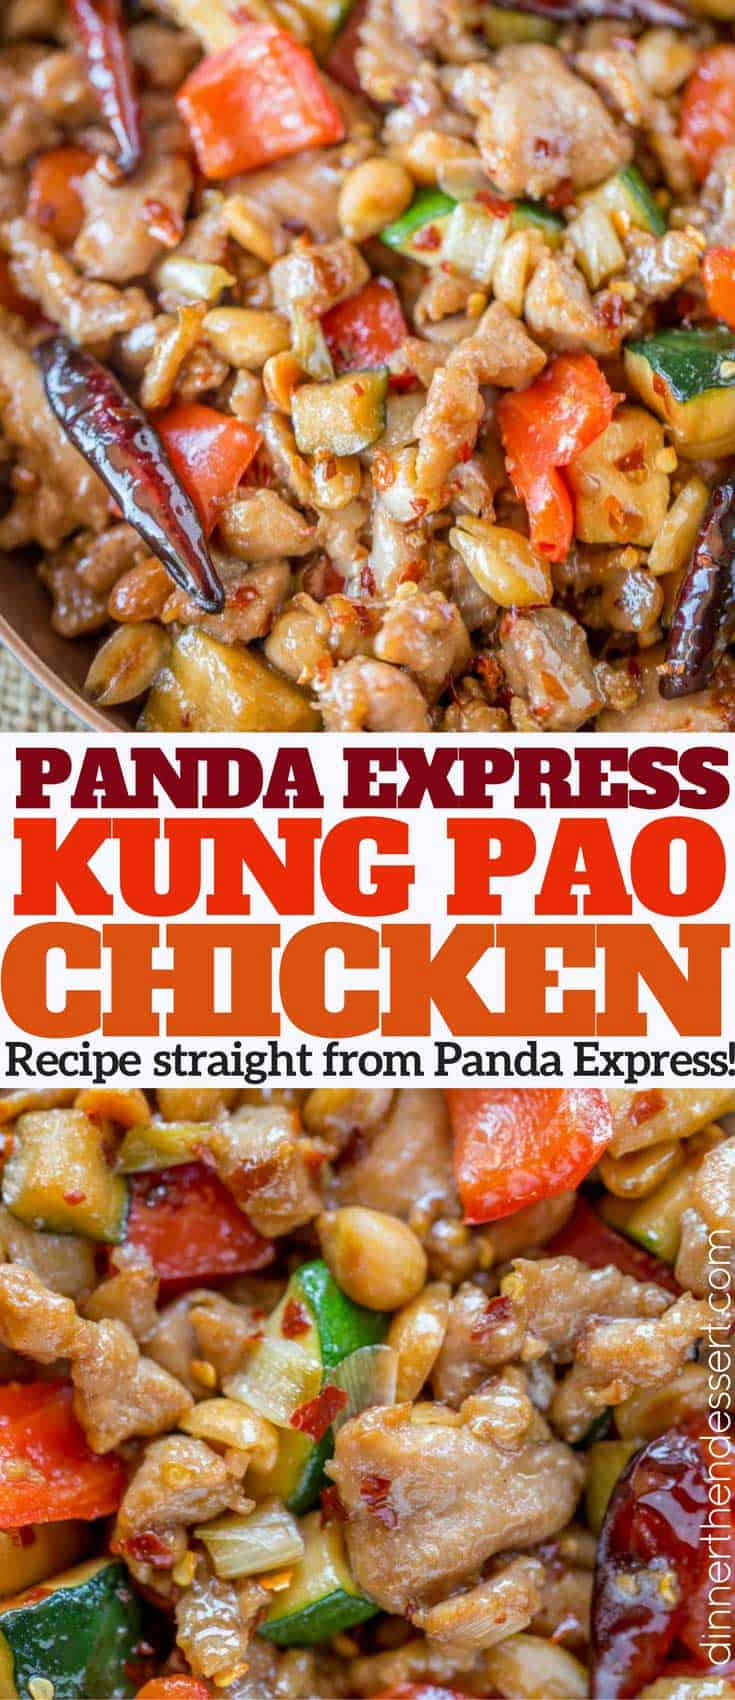 We LOVED this Panda Express Kung Pao Chicken, it was so easy to make and the best copycat!